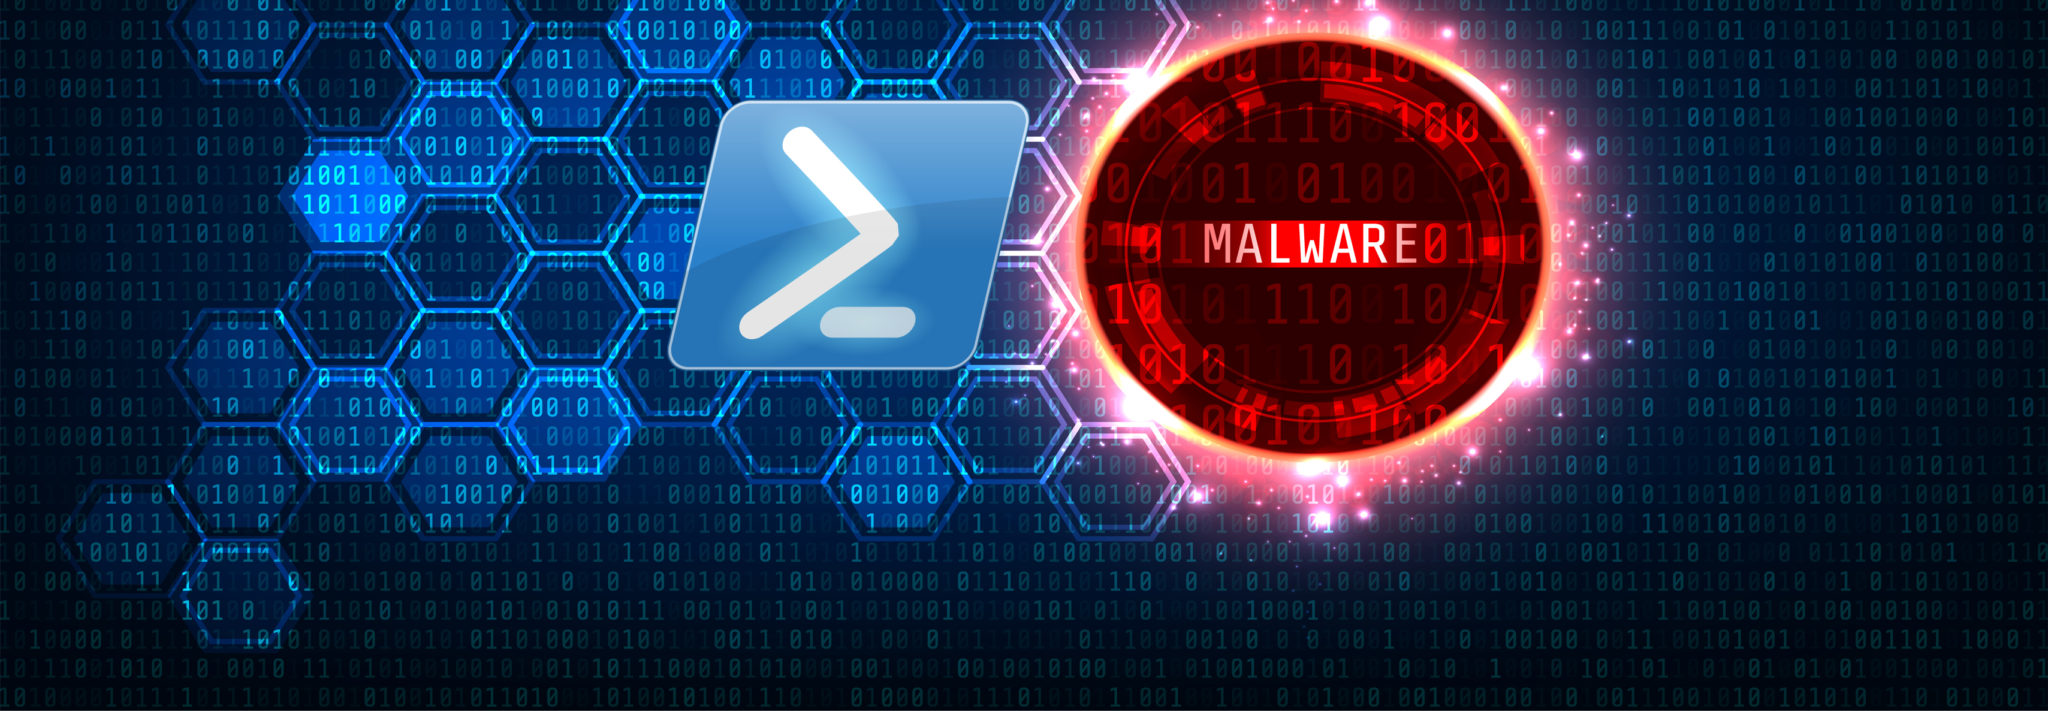 PowerShell script obfuscation: Fight back against this